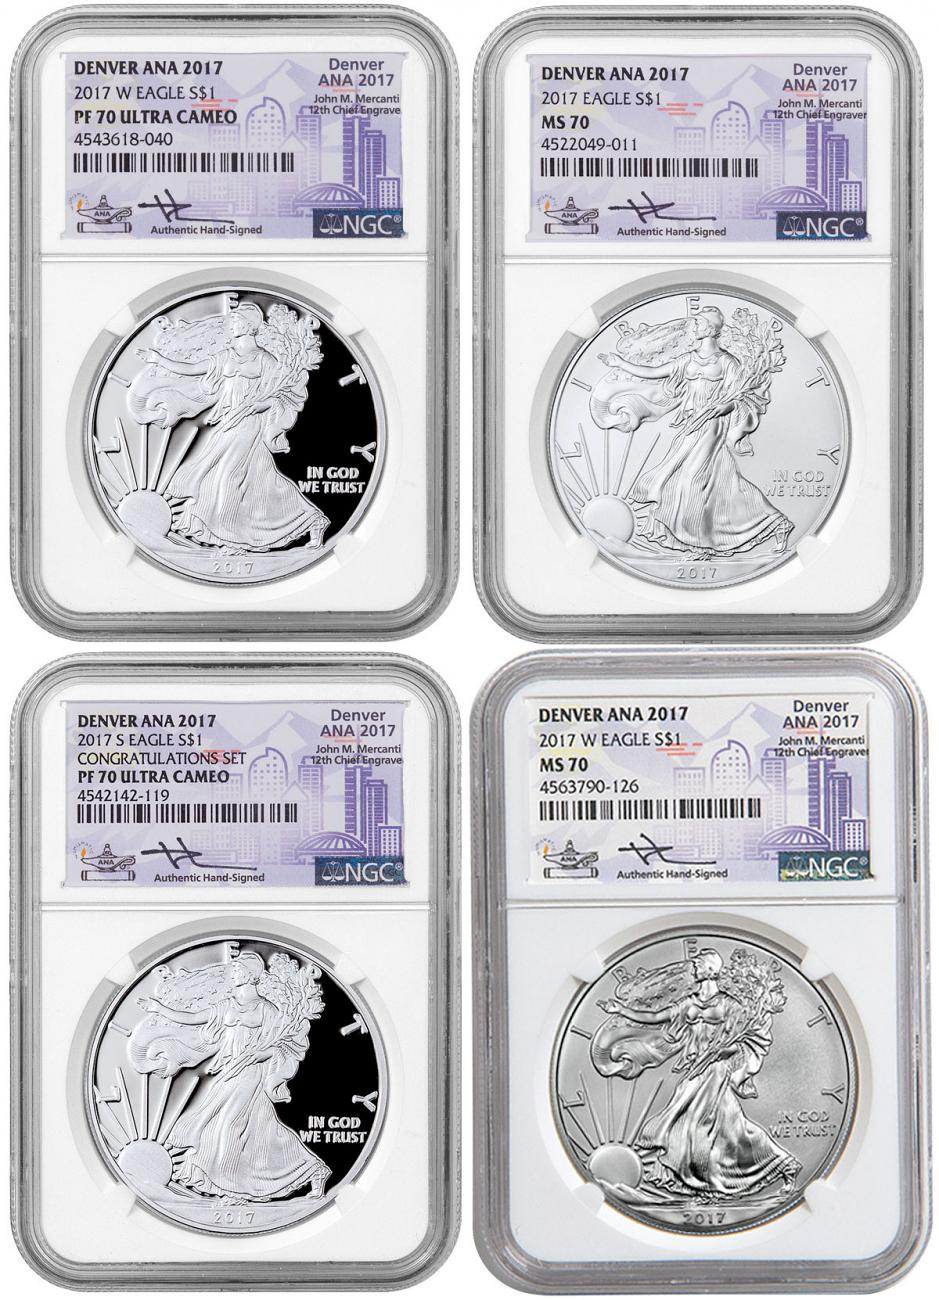 2017 American Silver Eagle 4-Coin Set Denver ANA 2017 NGC MS70 PF70 UC Exclusive Mercanti Signed ANA Label